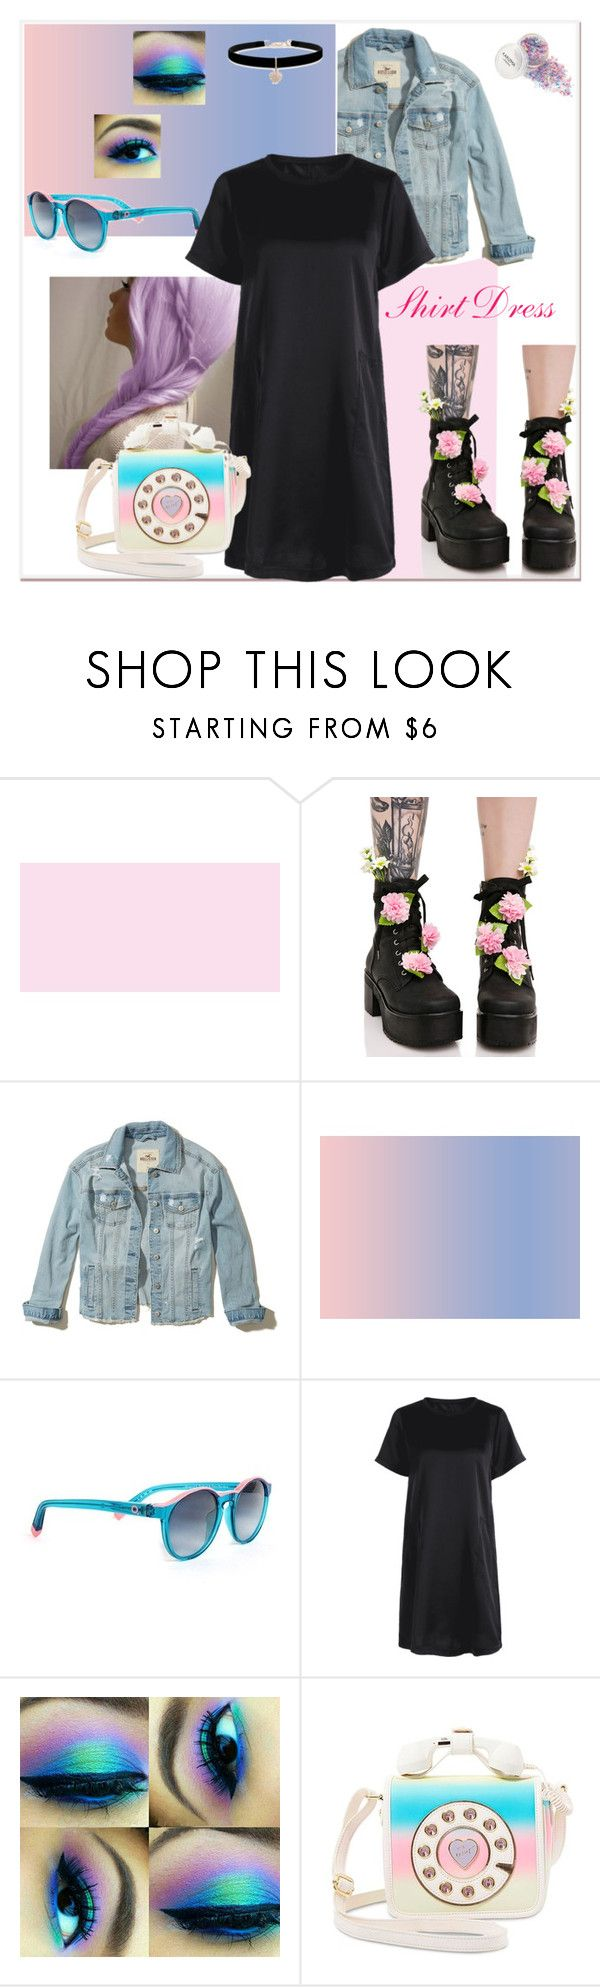 """Shirt Dress"" by tattooedmum ❤ liked on Polyvore featuring Sugar Thrillz, Hollister Co., Etnia Barcelona, Betsey Johnson, shirtdress, contestentry and dollskill"